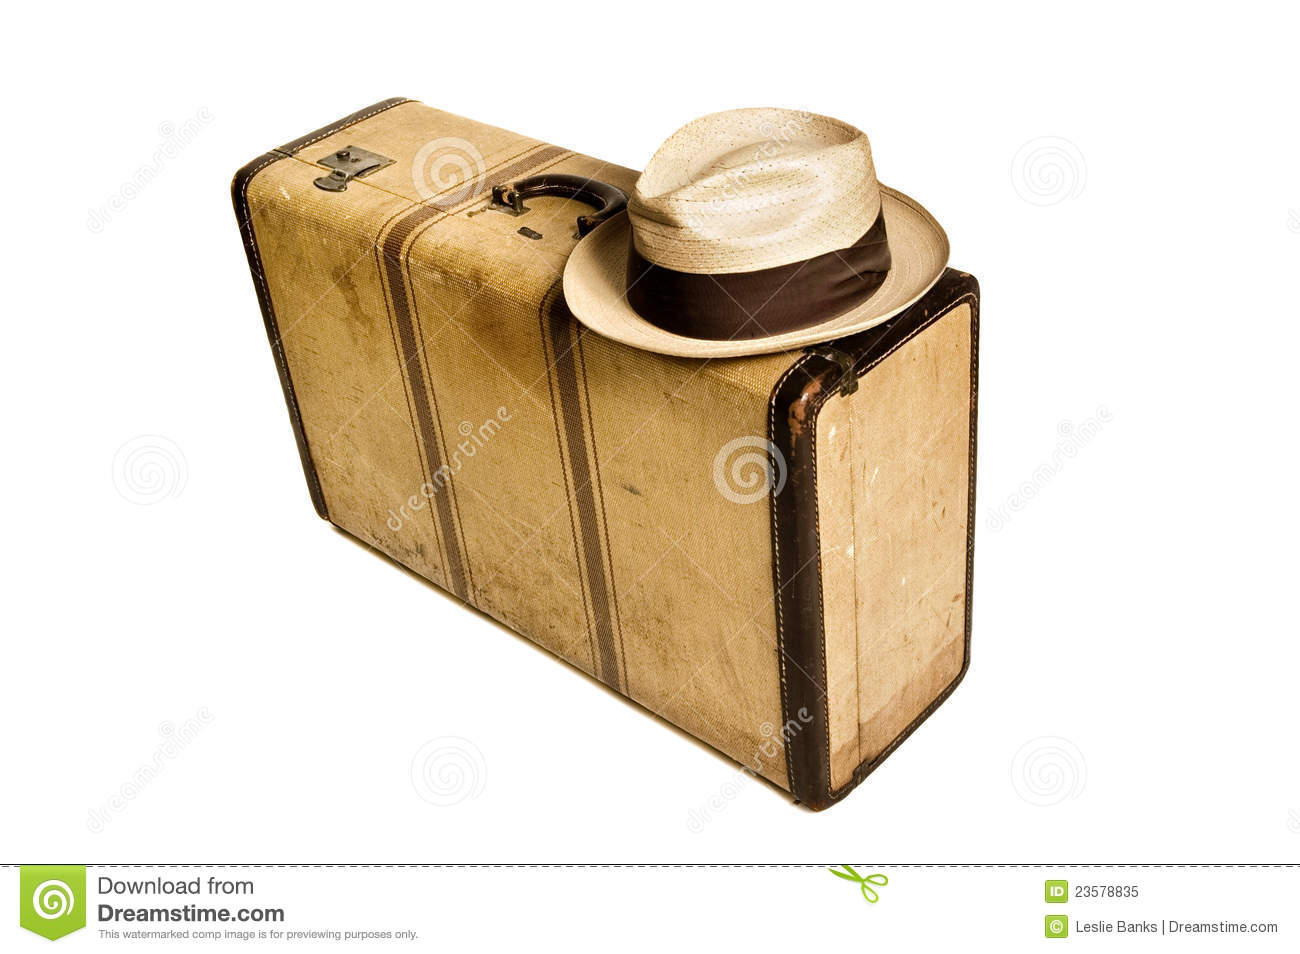 Vintage suitcase and hat stock image image of vintage for The vintage suitcase